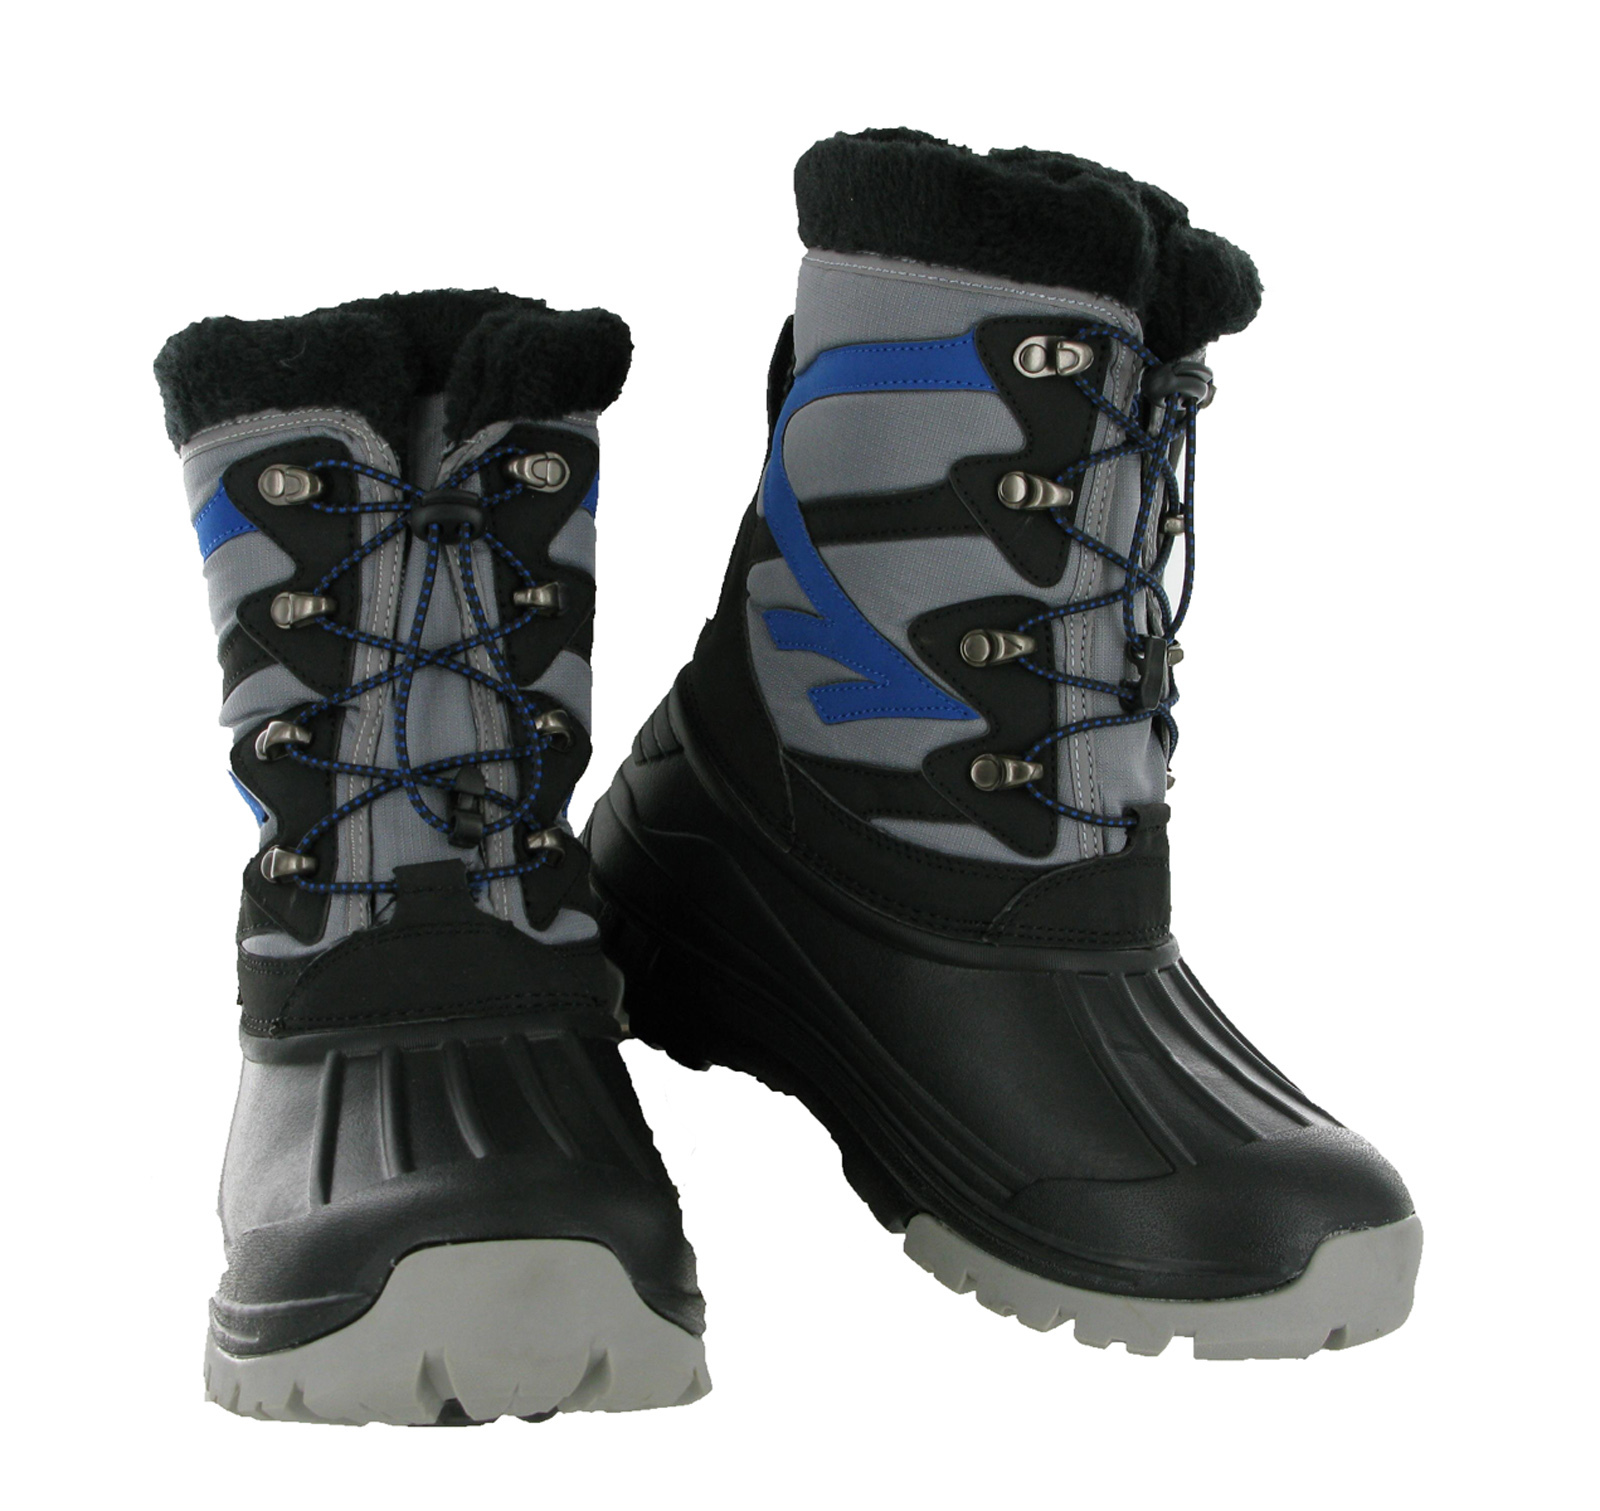 Discover the latest styles of boys' winter boots at Famous Footwear! Find the right fit today!